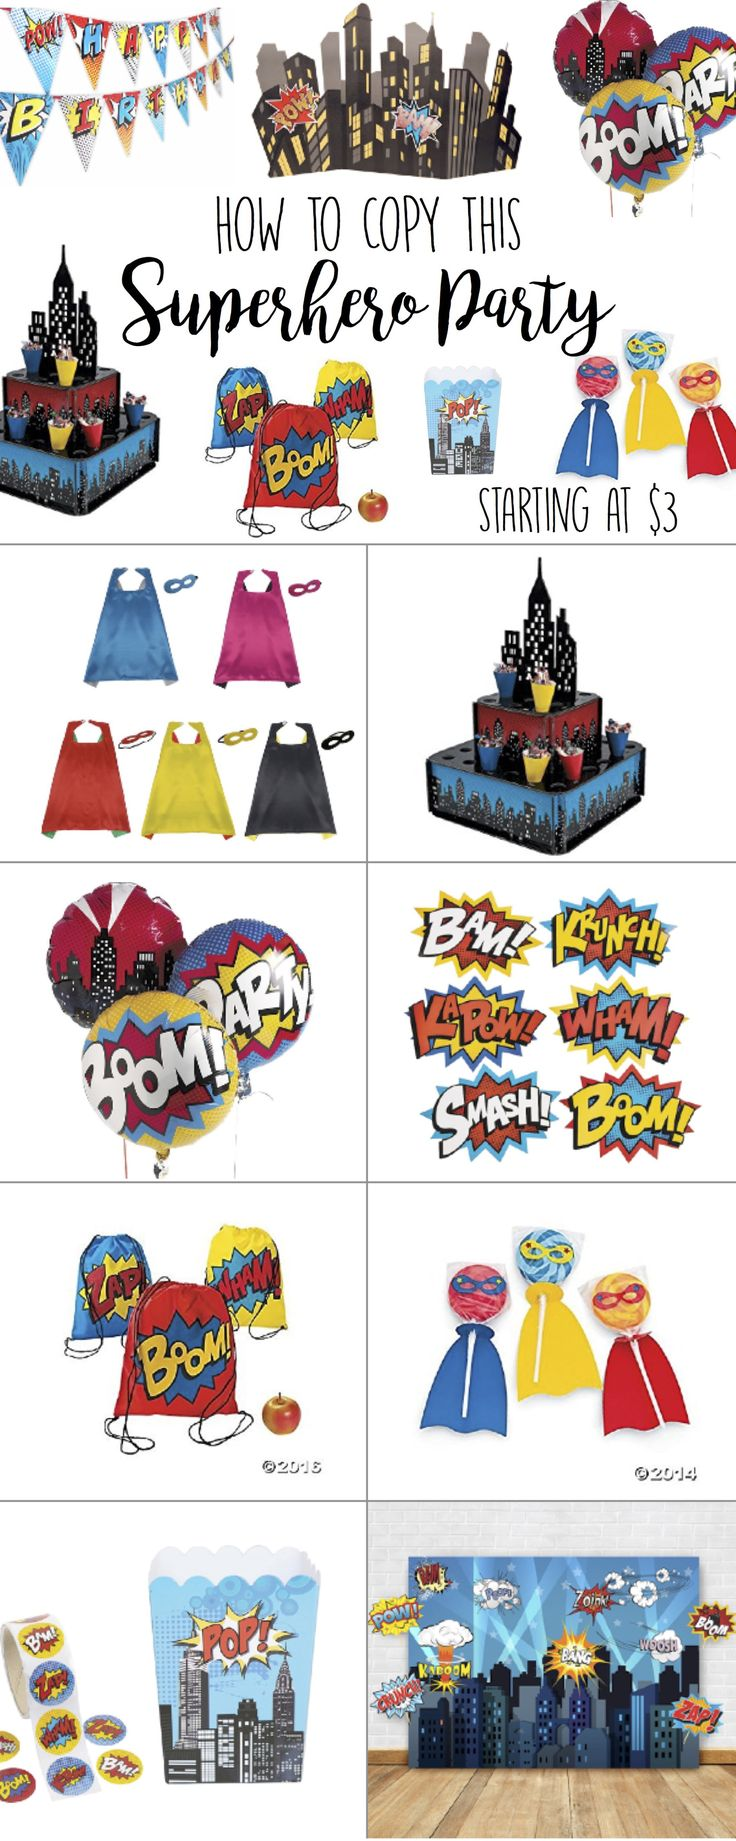 Superhero Birthday Party, Boys, Games, Girly, 1st, Food, Ideas, Decorations, Invitations, Cake, For Girls, DIY, Favors, Centerpiece, Outfit, Activities, Toddler, Goodie Bags, Photo Booth, Backdrop, Table, Cupcakes, Marvel, DC Comics, Crafts, 3 year old birthday party ideas, invites, snacks, treats, signs, unisex, theme, budget, balloons, pow!, banner, drinks, capes, masks, shirt, desserts, lego, generic, princess and, outdoor, comic books, background, wonder woman, superman, batman, coed…